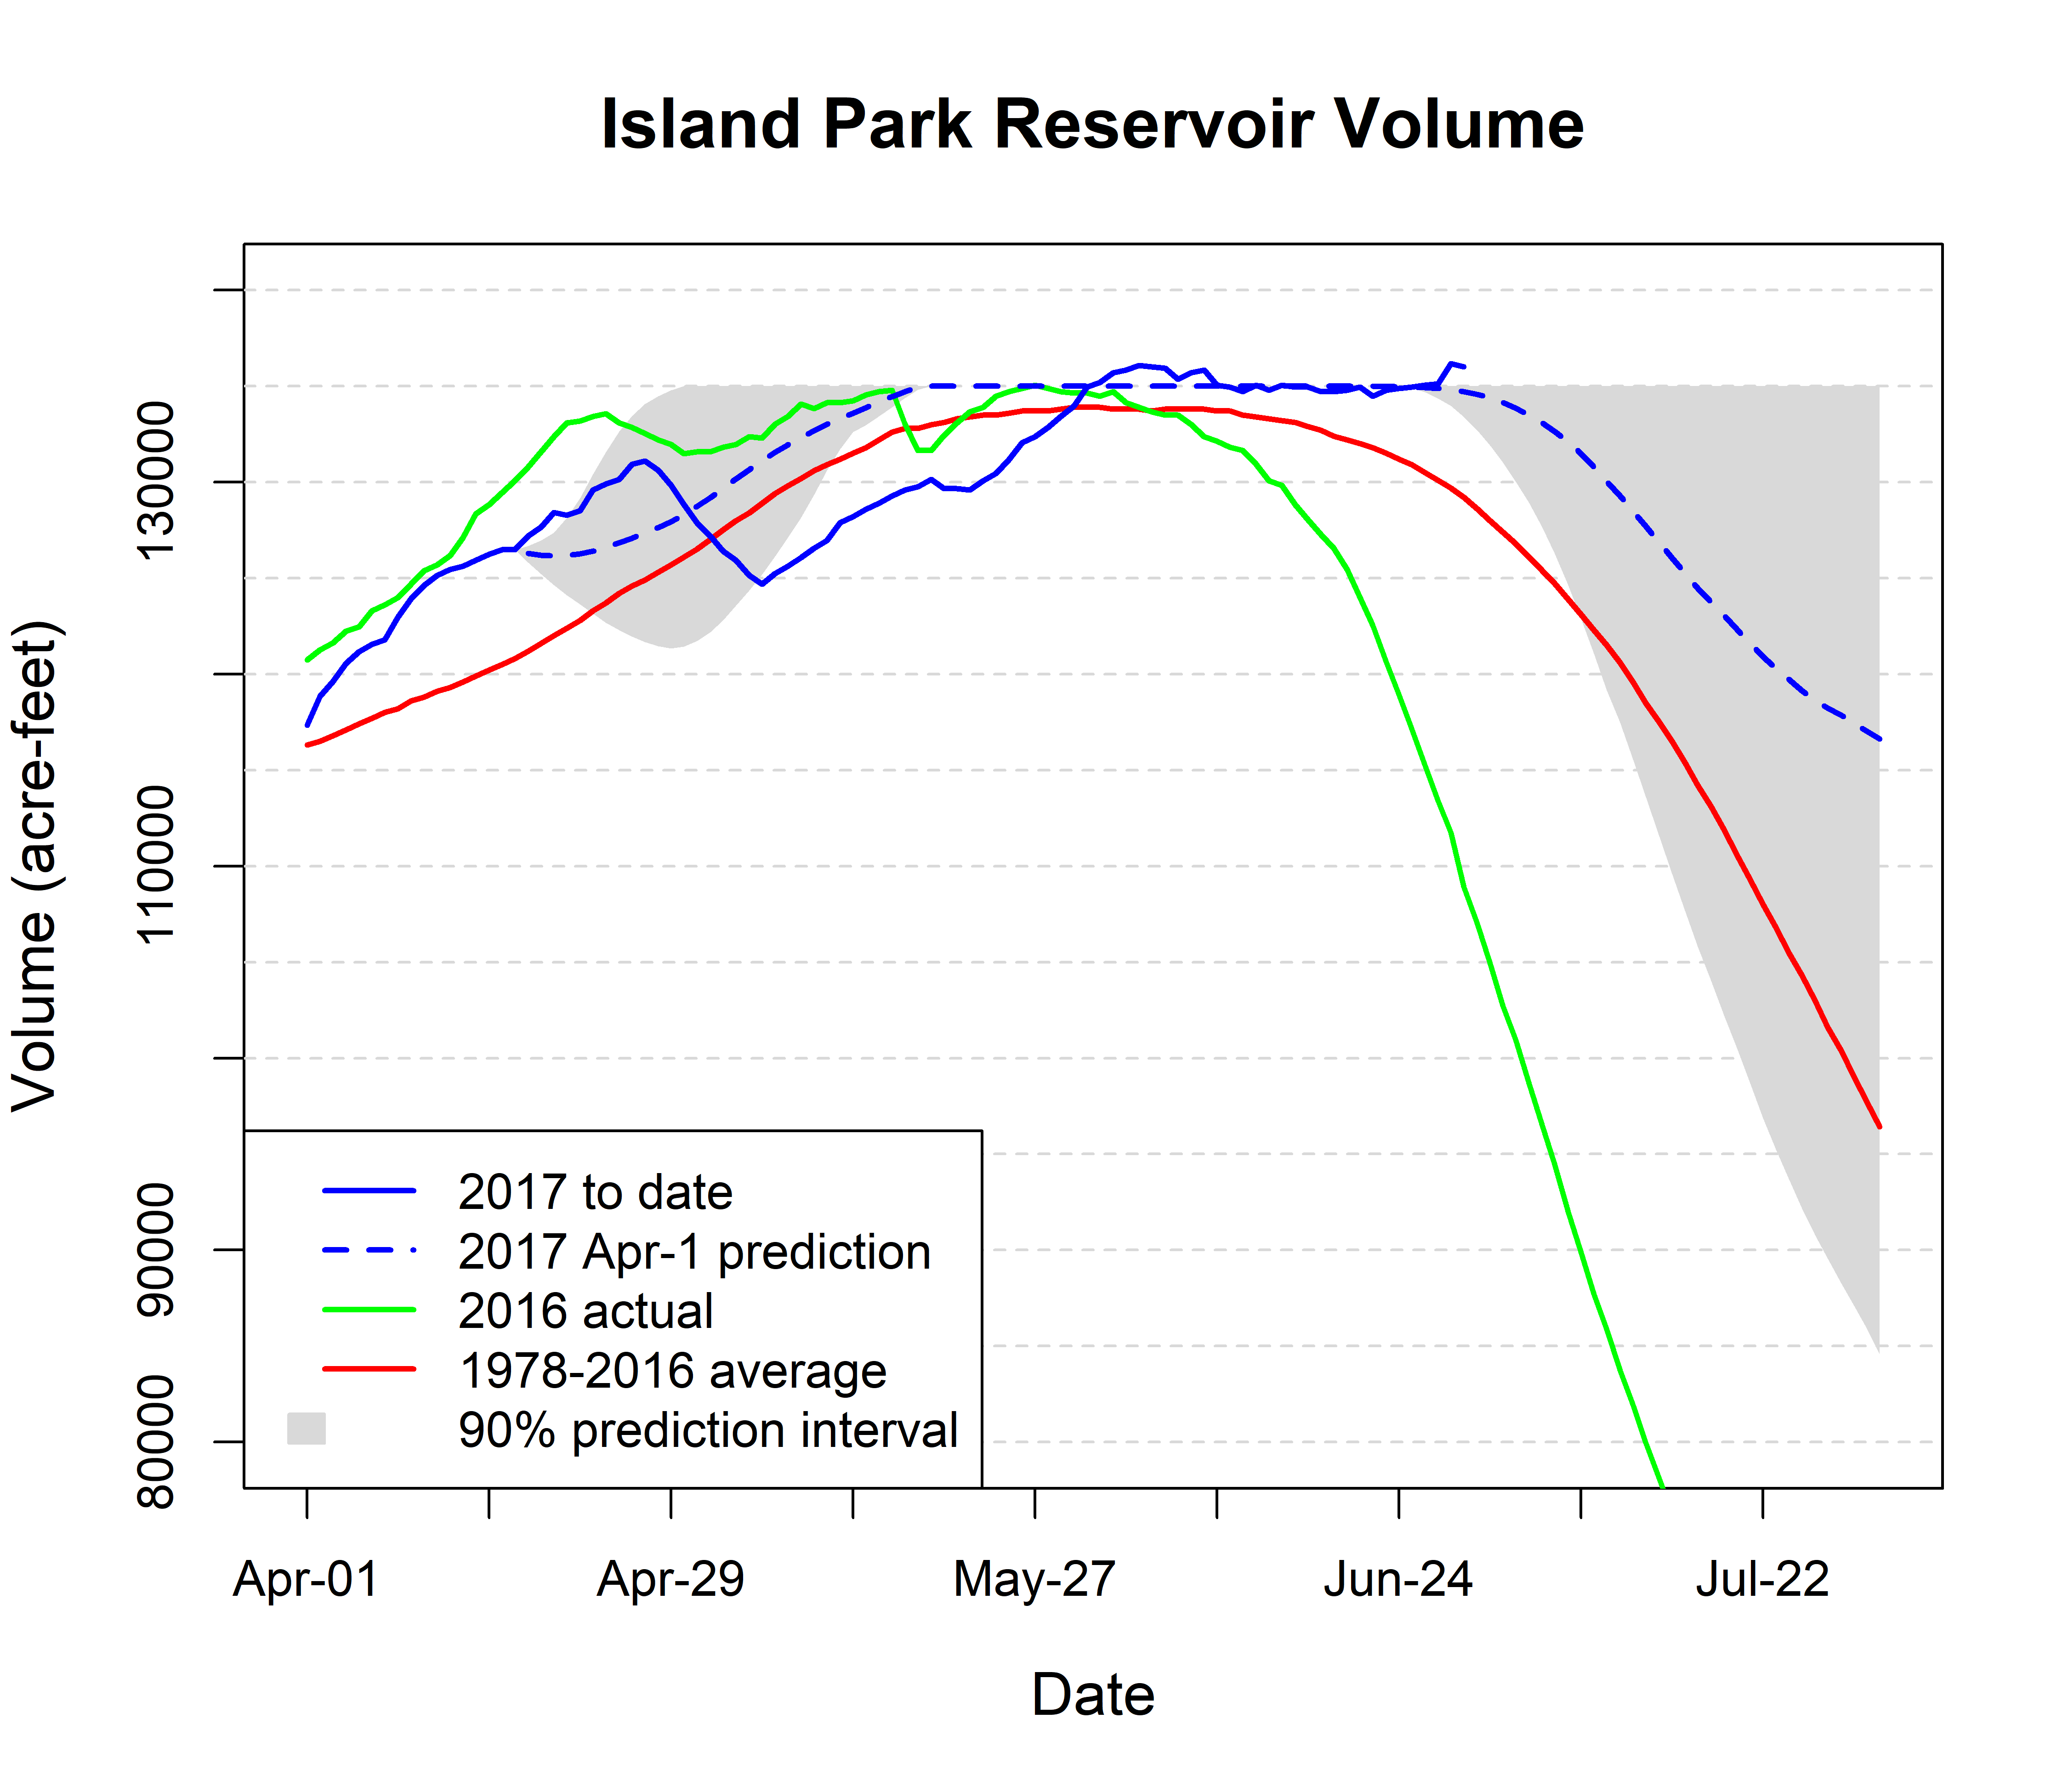 Graph of volume in Island Park Reservoir.